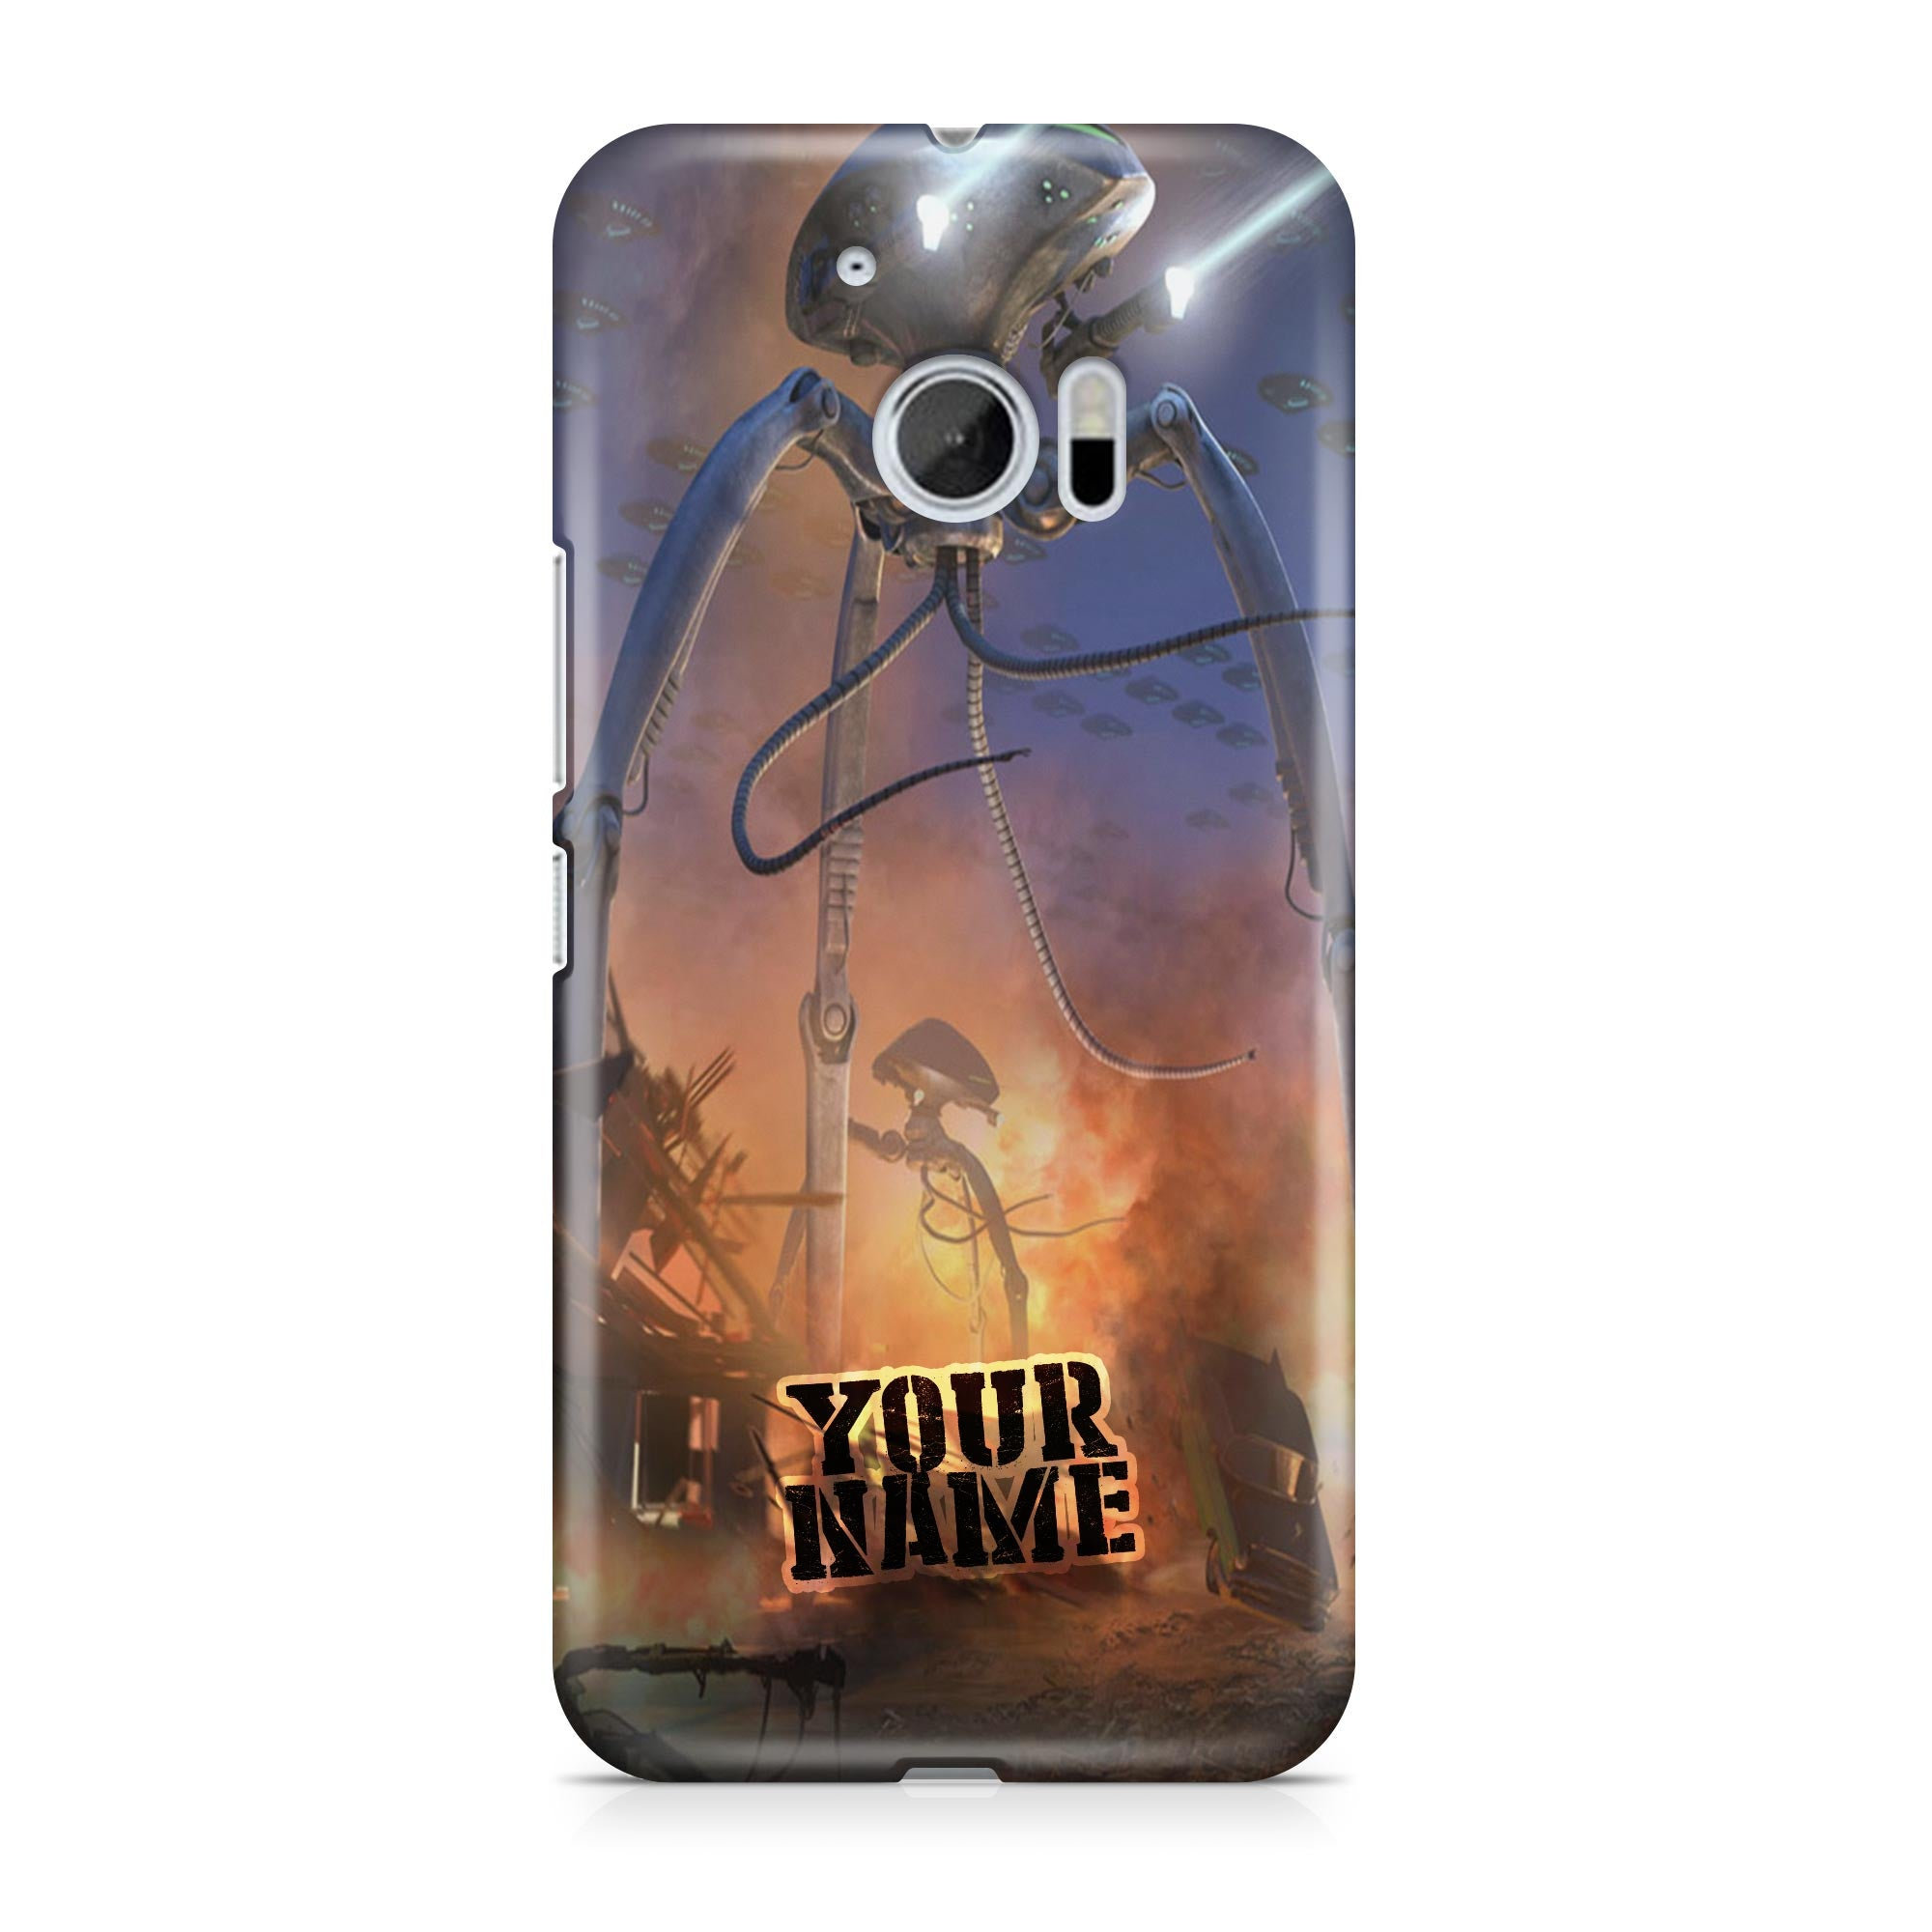 Aliens Monster Space Robot Attack World Wars Earth Phone Cases Cover